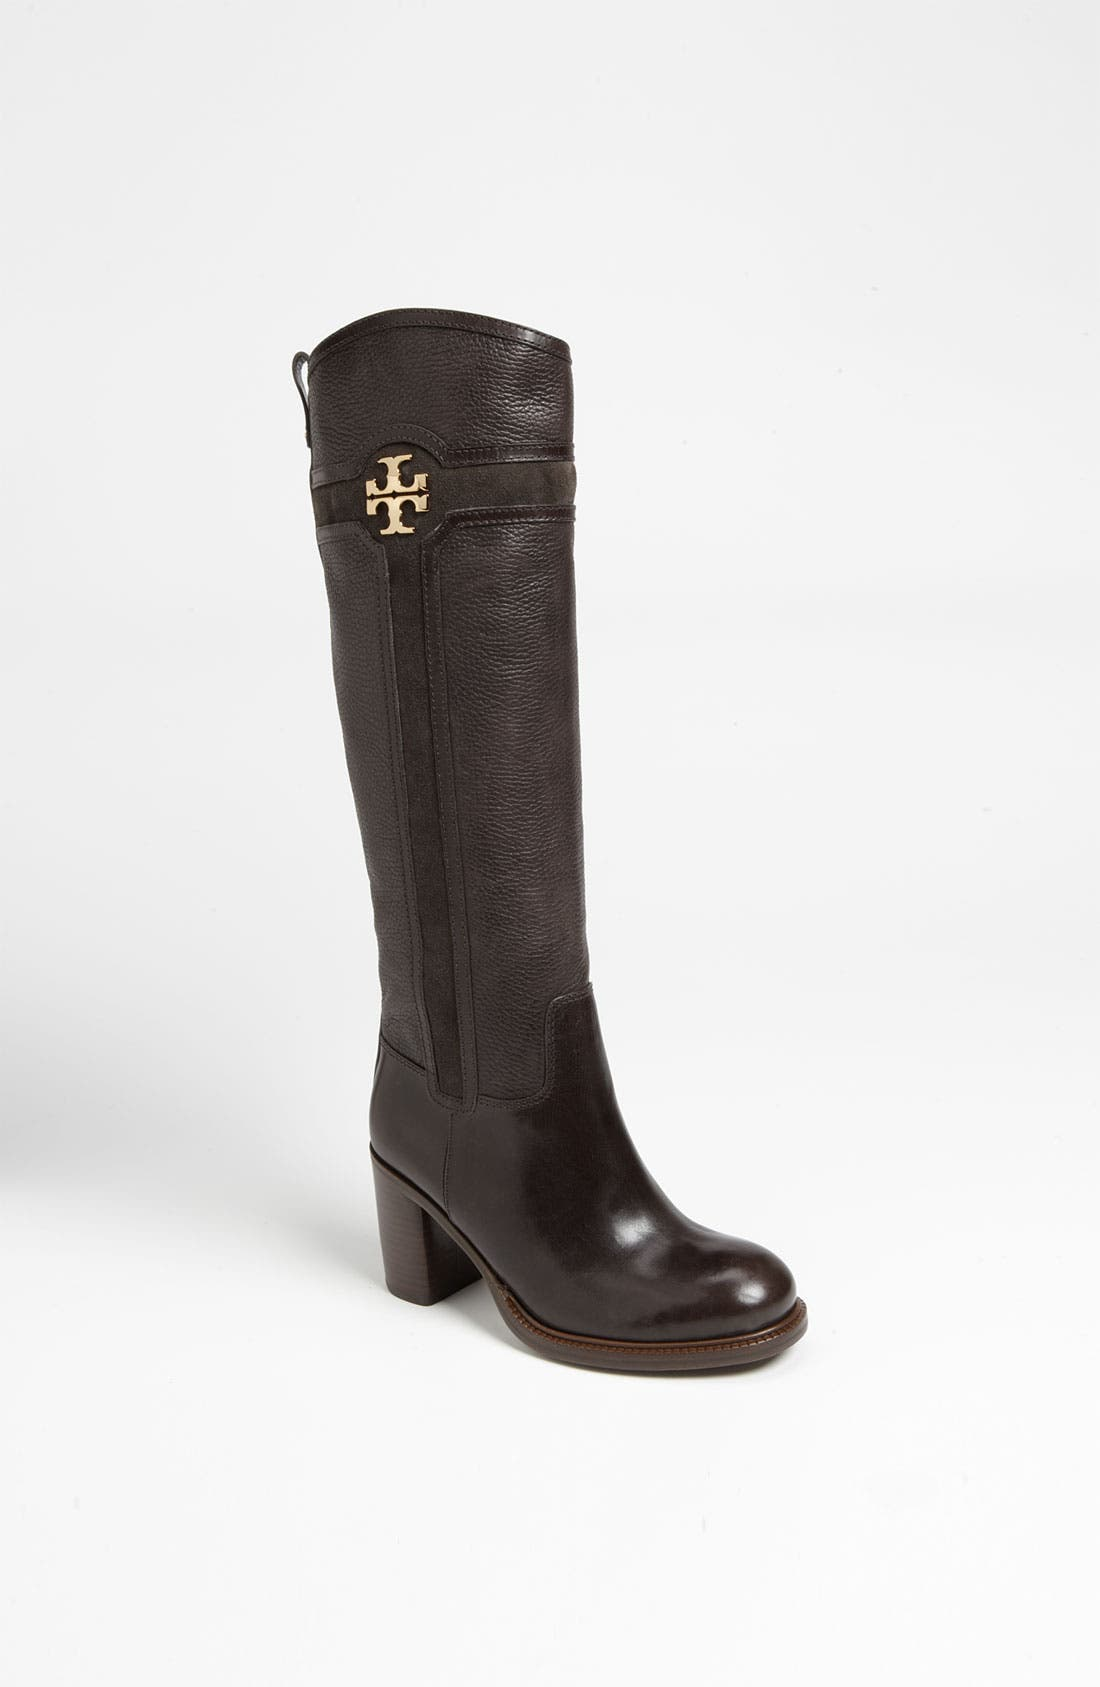 Alternate Image 1 Selected - Tory Burch 'Alaina' Boot